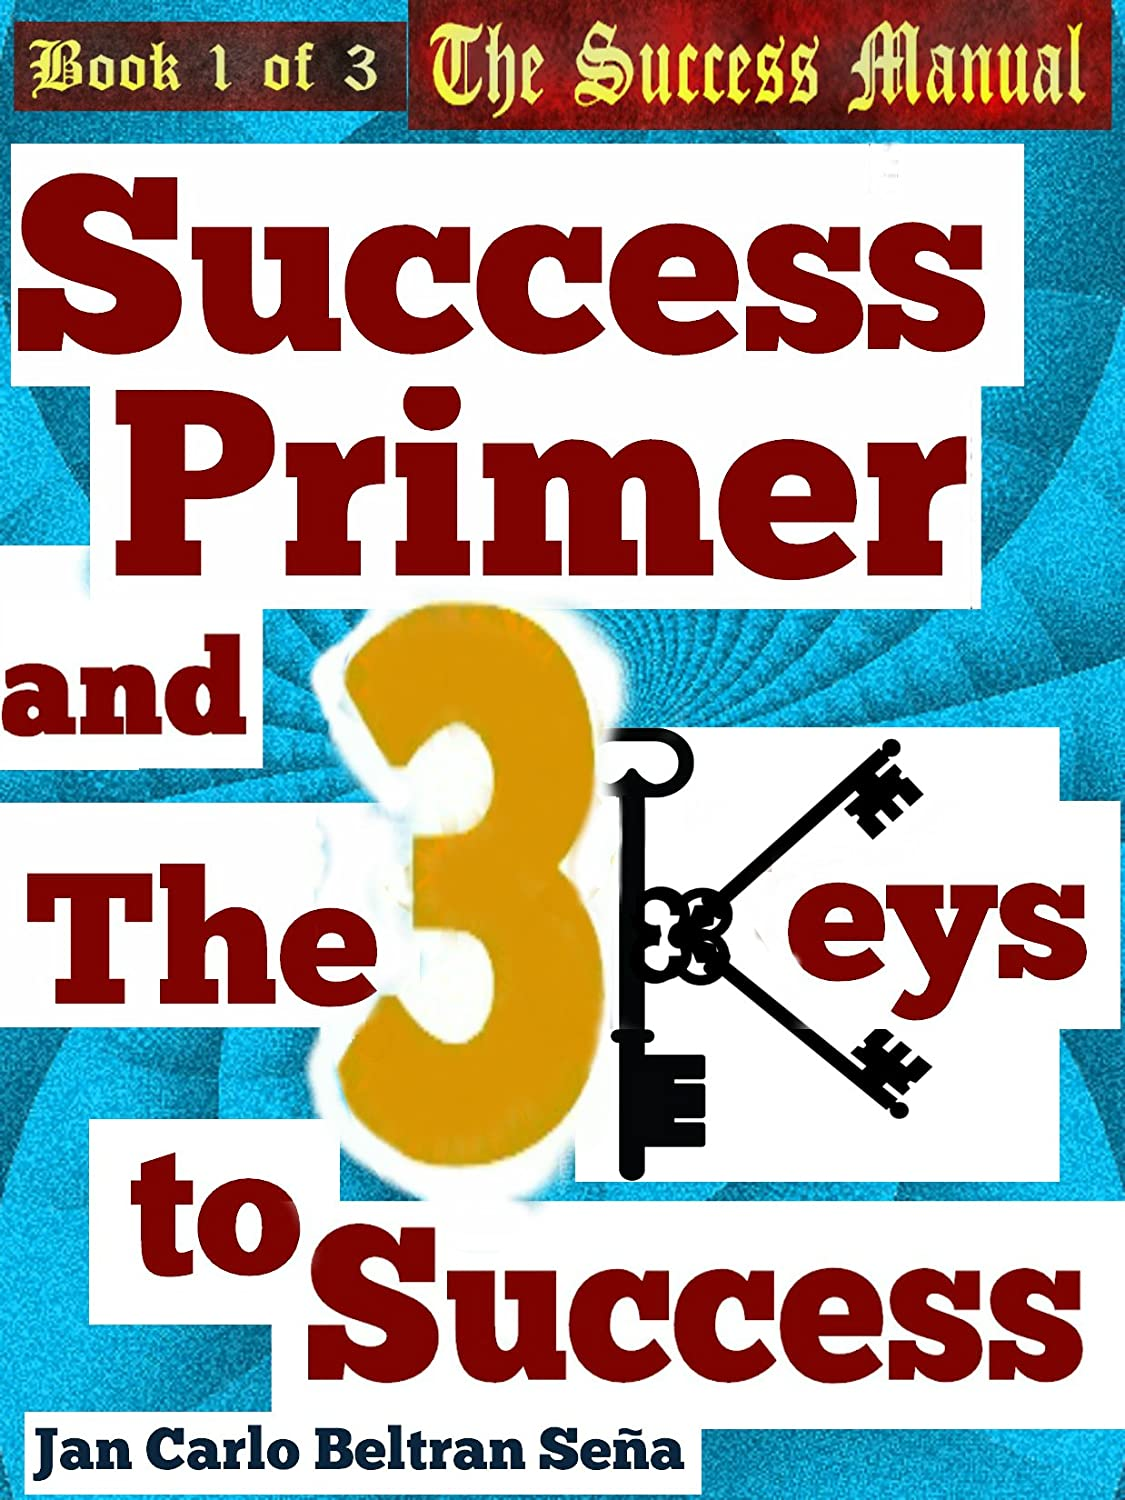 Book-1-The-Success-Manual-Success-Primer-and-the-3-Keys-to-Success